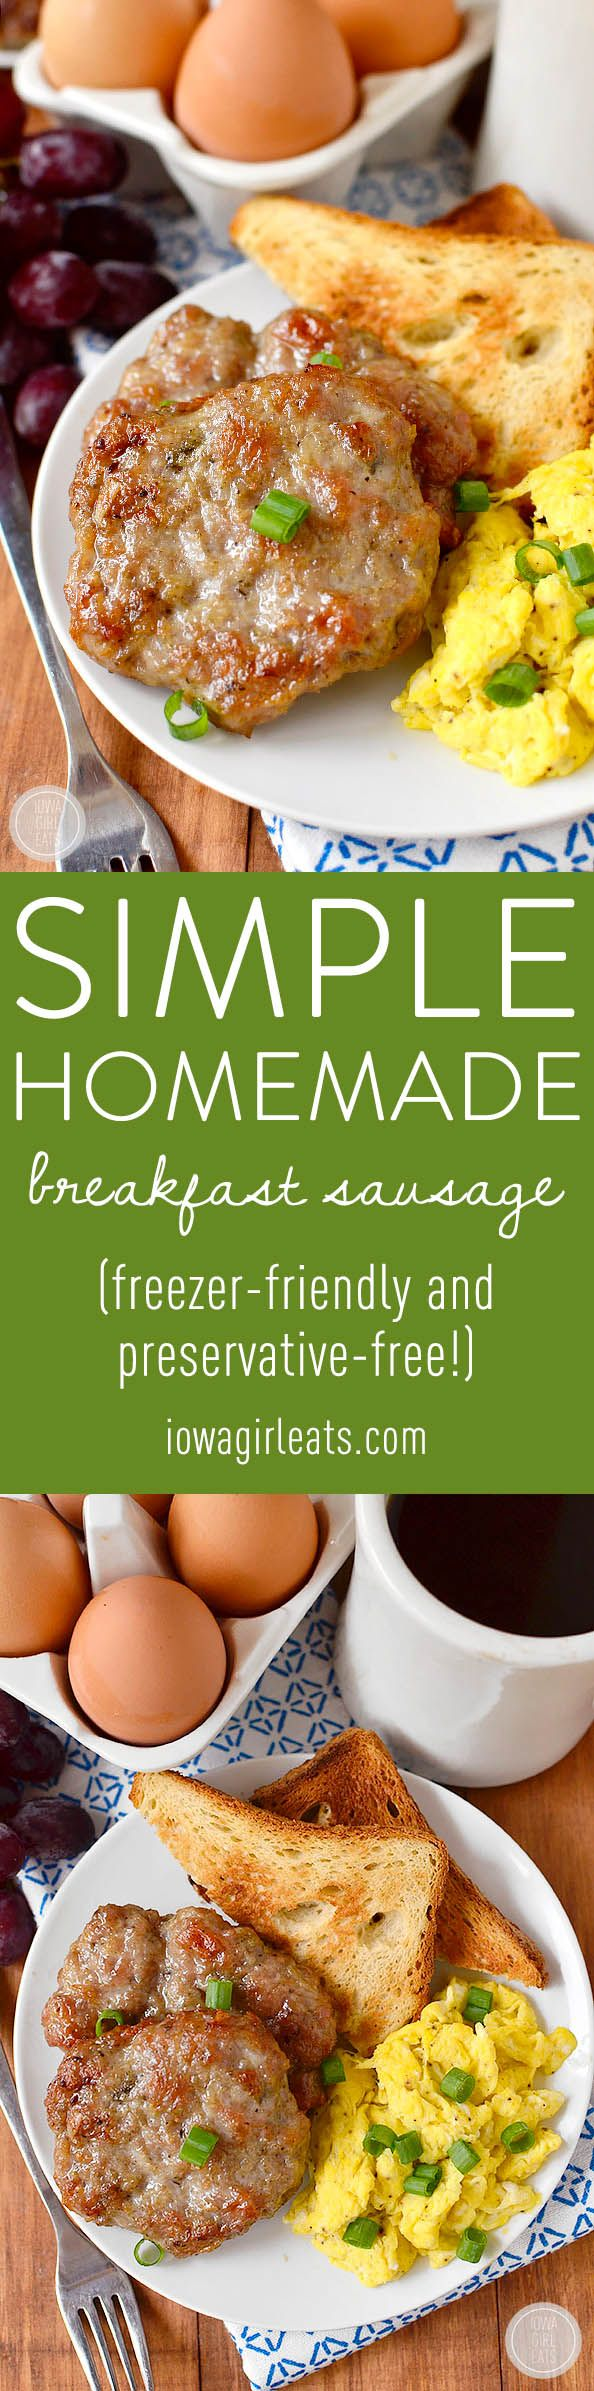 Simple Homemade Breakfast Sausage is made with pantry staples, freezer-friendly, and preservative and gluten-free!| iowagirleats.com